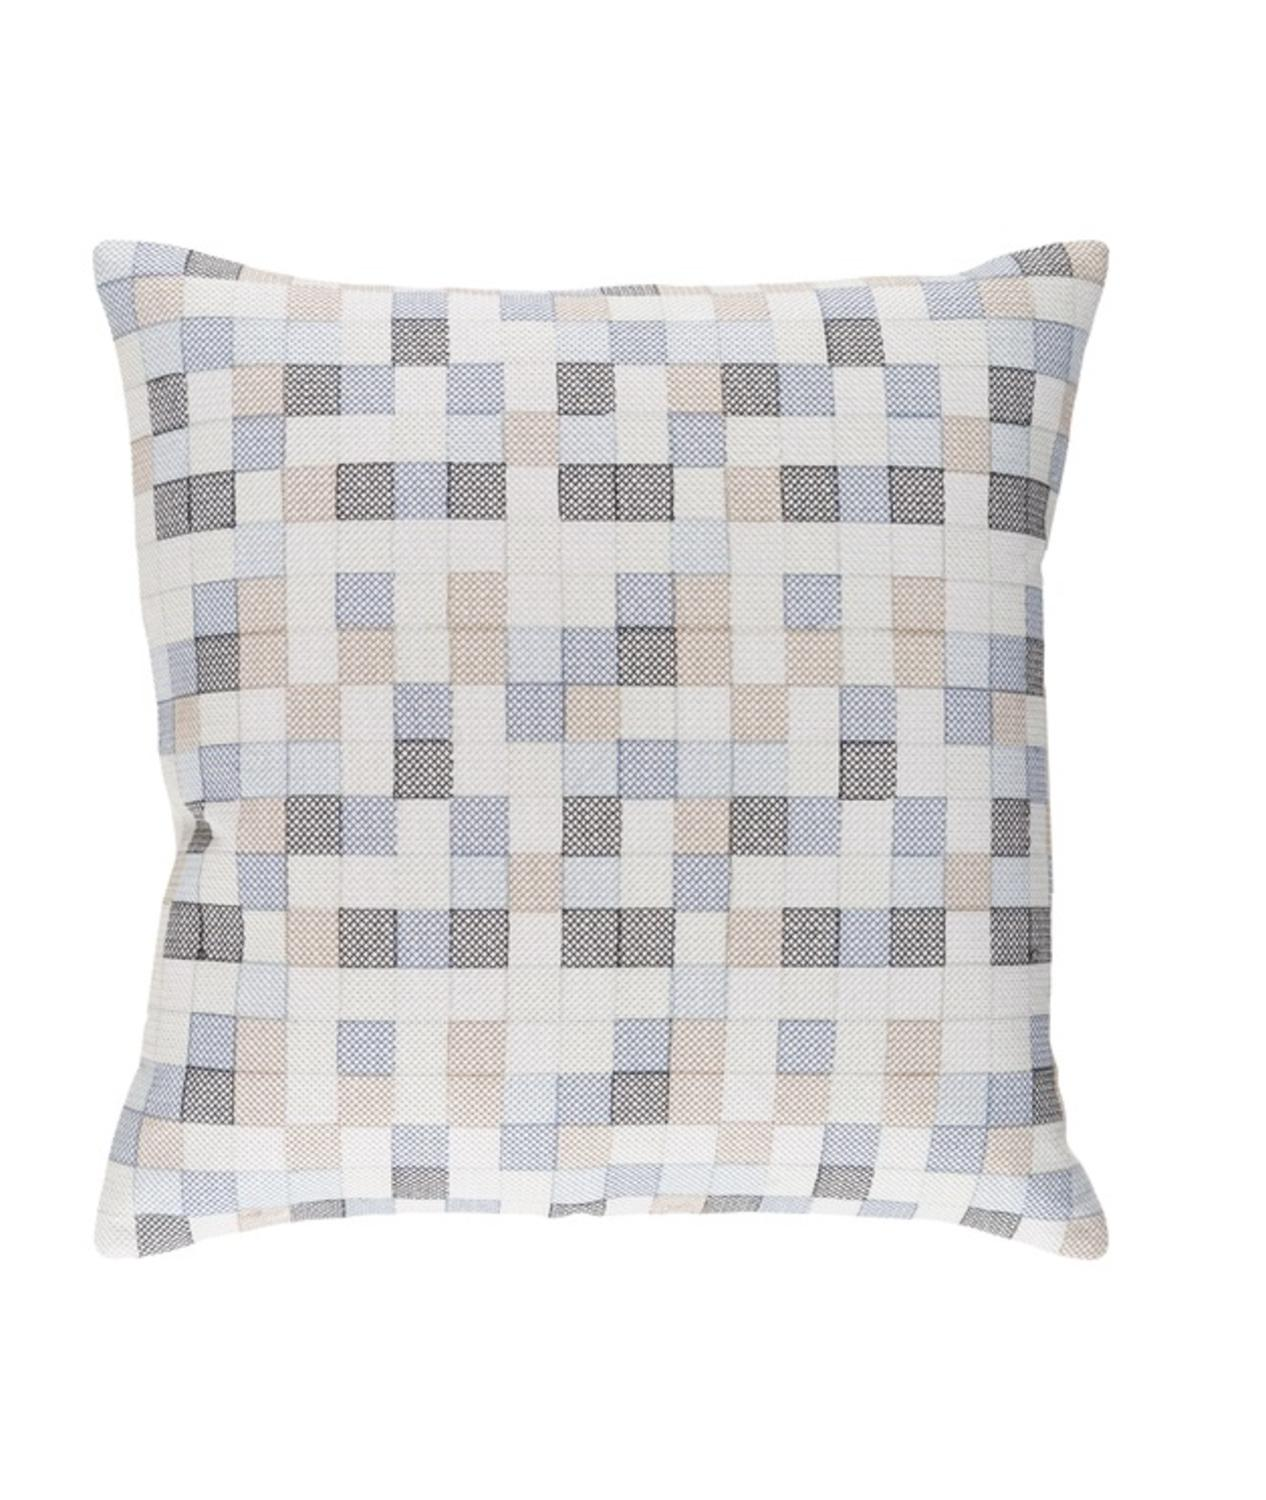 Steel Blue Throw Pillows : 22